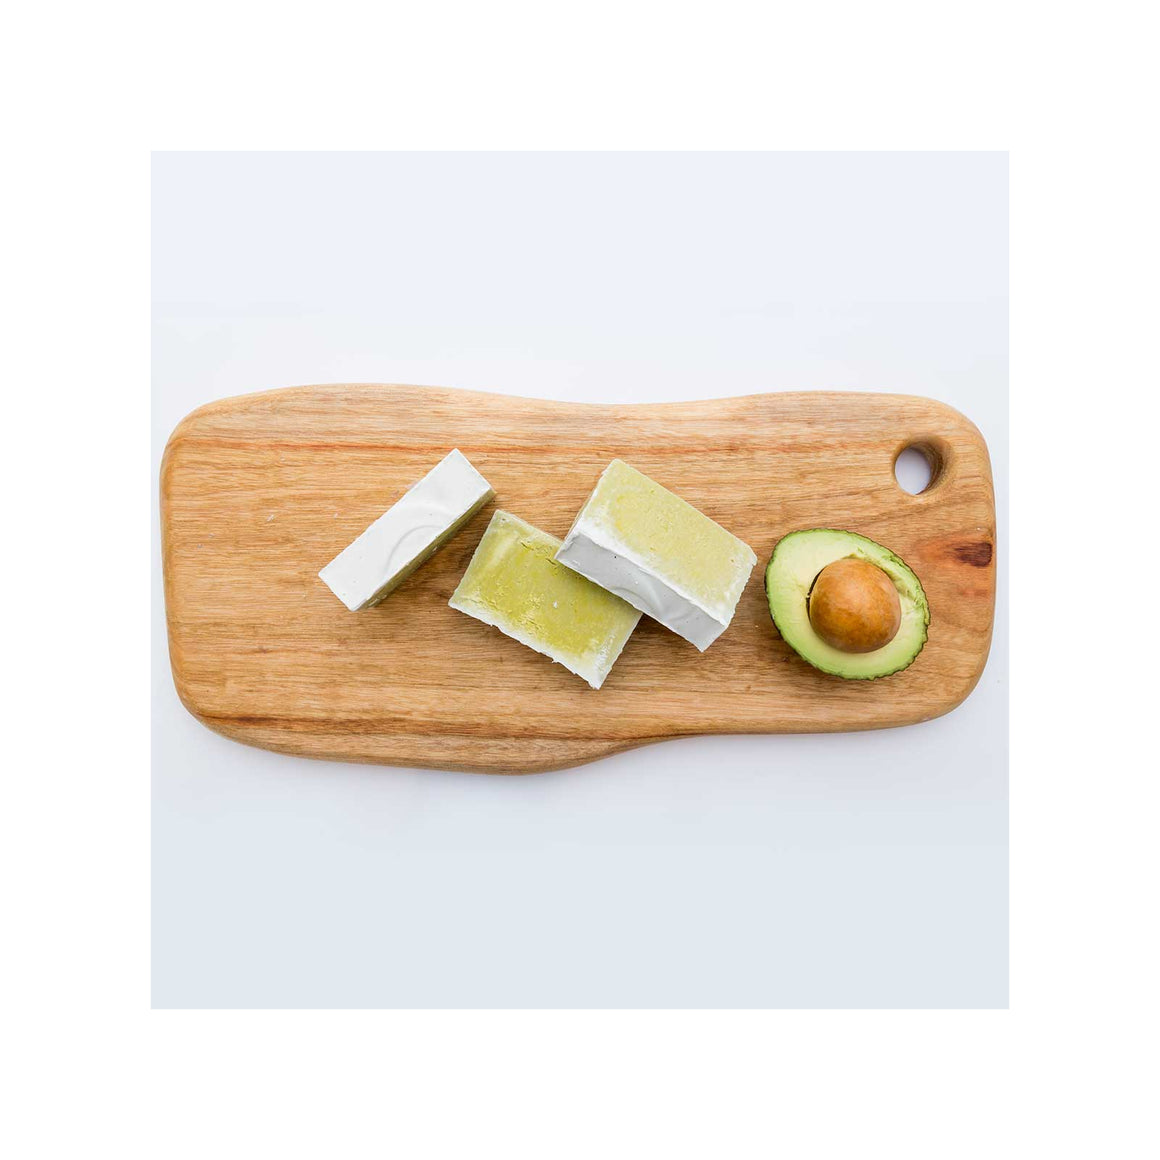 The Australian Soap Kitchen Hydrating Avocado Natural Soap - 100g